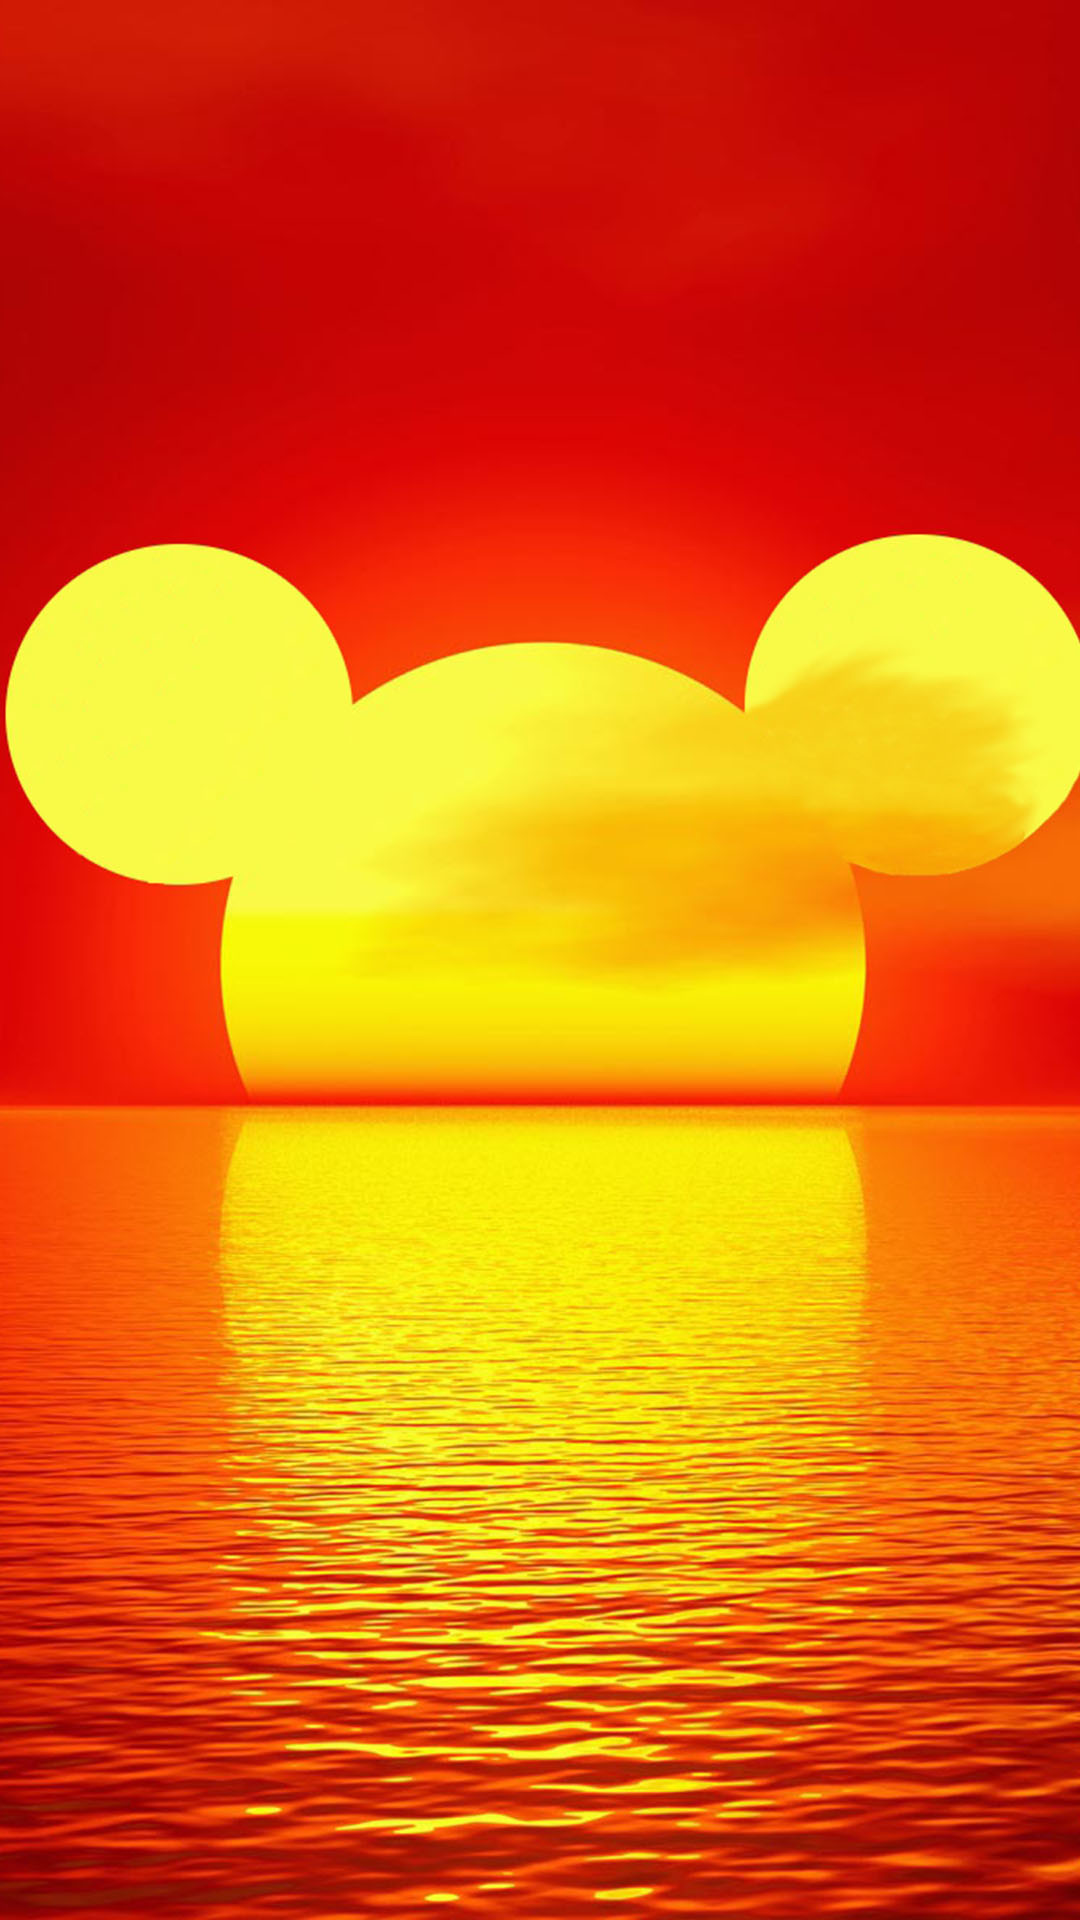 Wallpaper iphone mickey mouse - Cute Mickey Mouse Wallpaper Android Source Mickey Mouse Wallpaper Iphone Best Hd Wallpaper